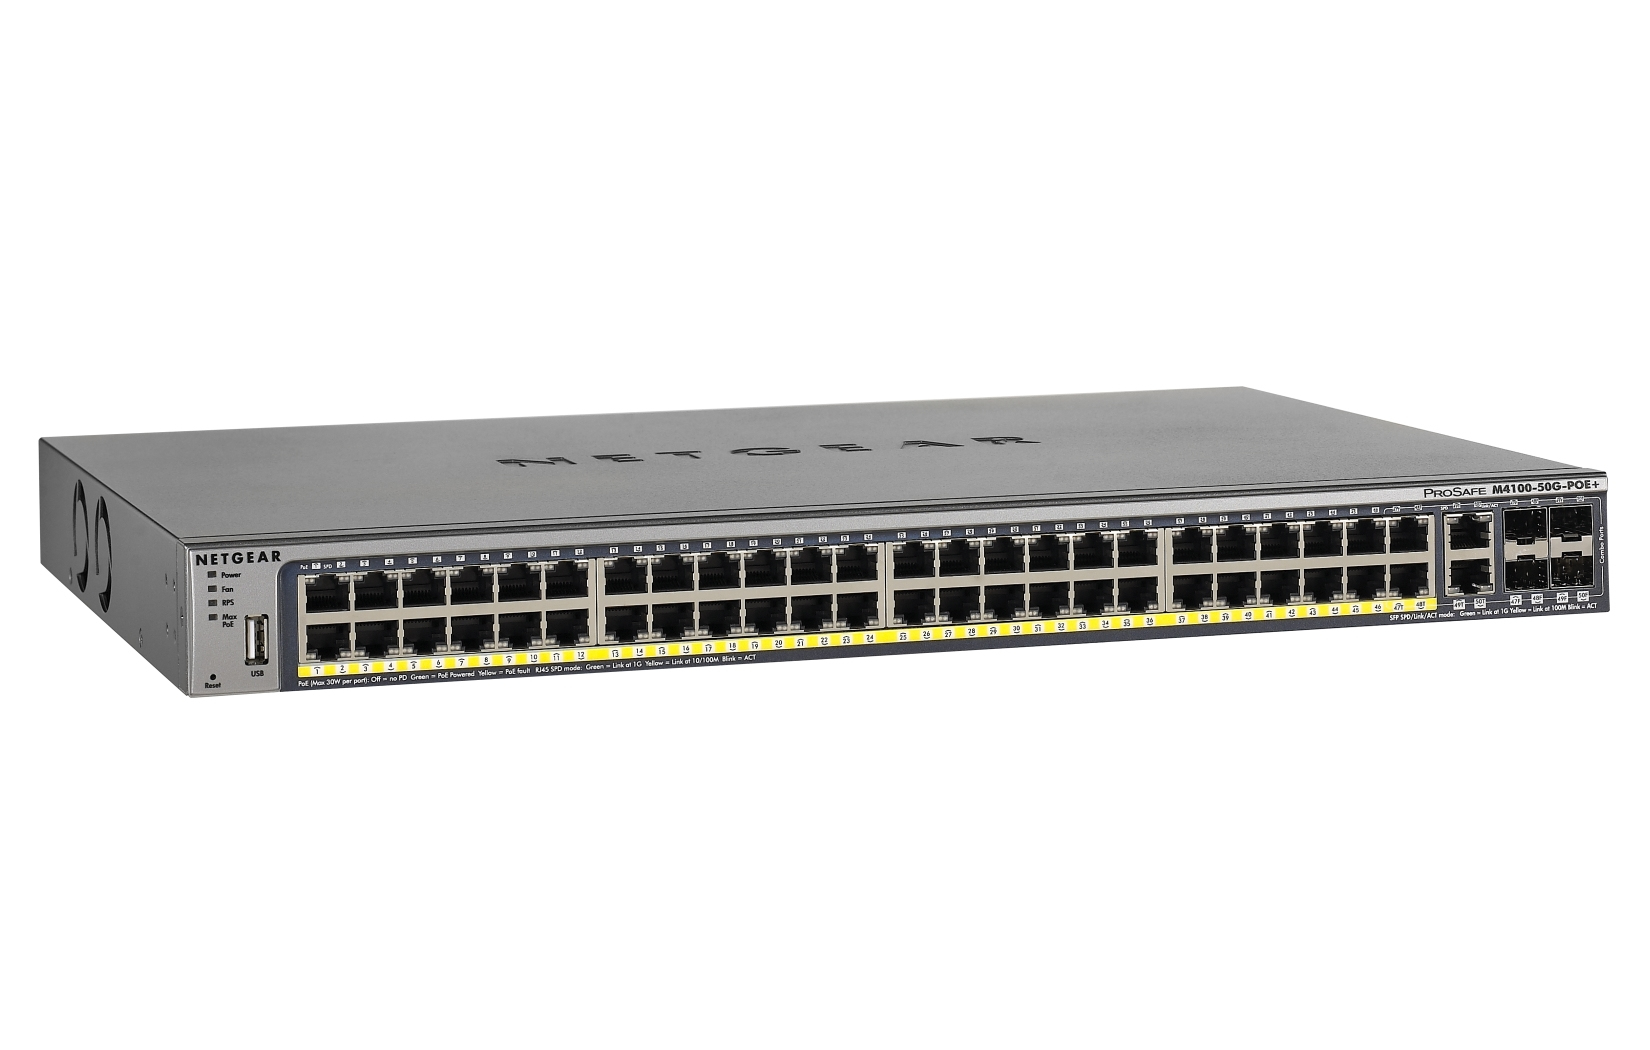 NETGEAR M4100-50G-POE+ MANAGED NETWORK SWITCH L2+ GIGABIT ETHERNET POWER OVER (POE) GREY